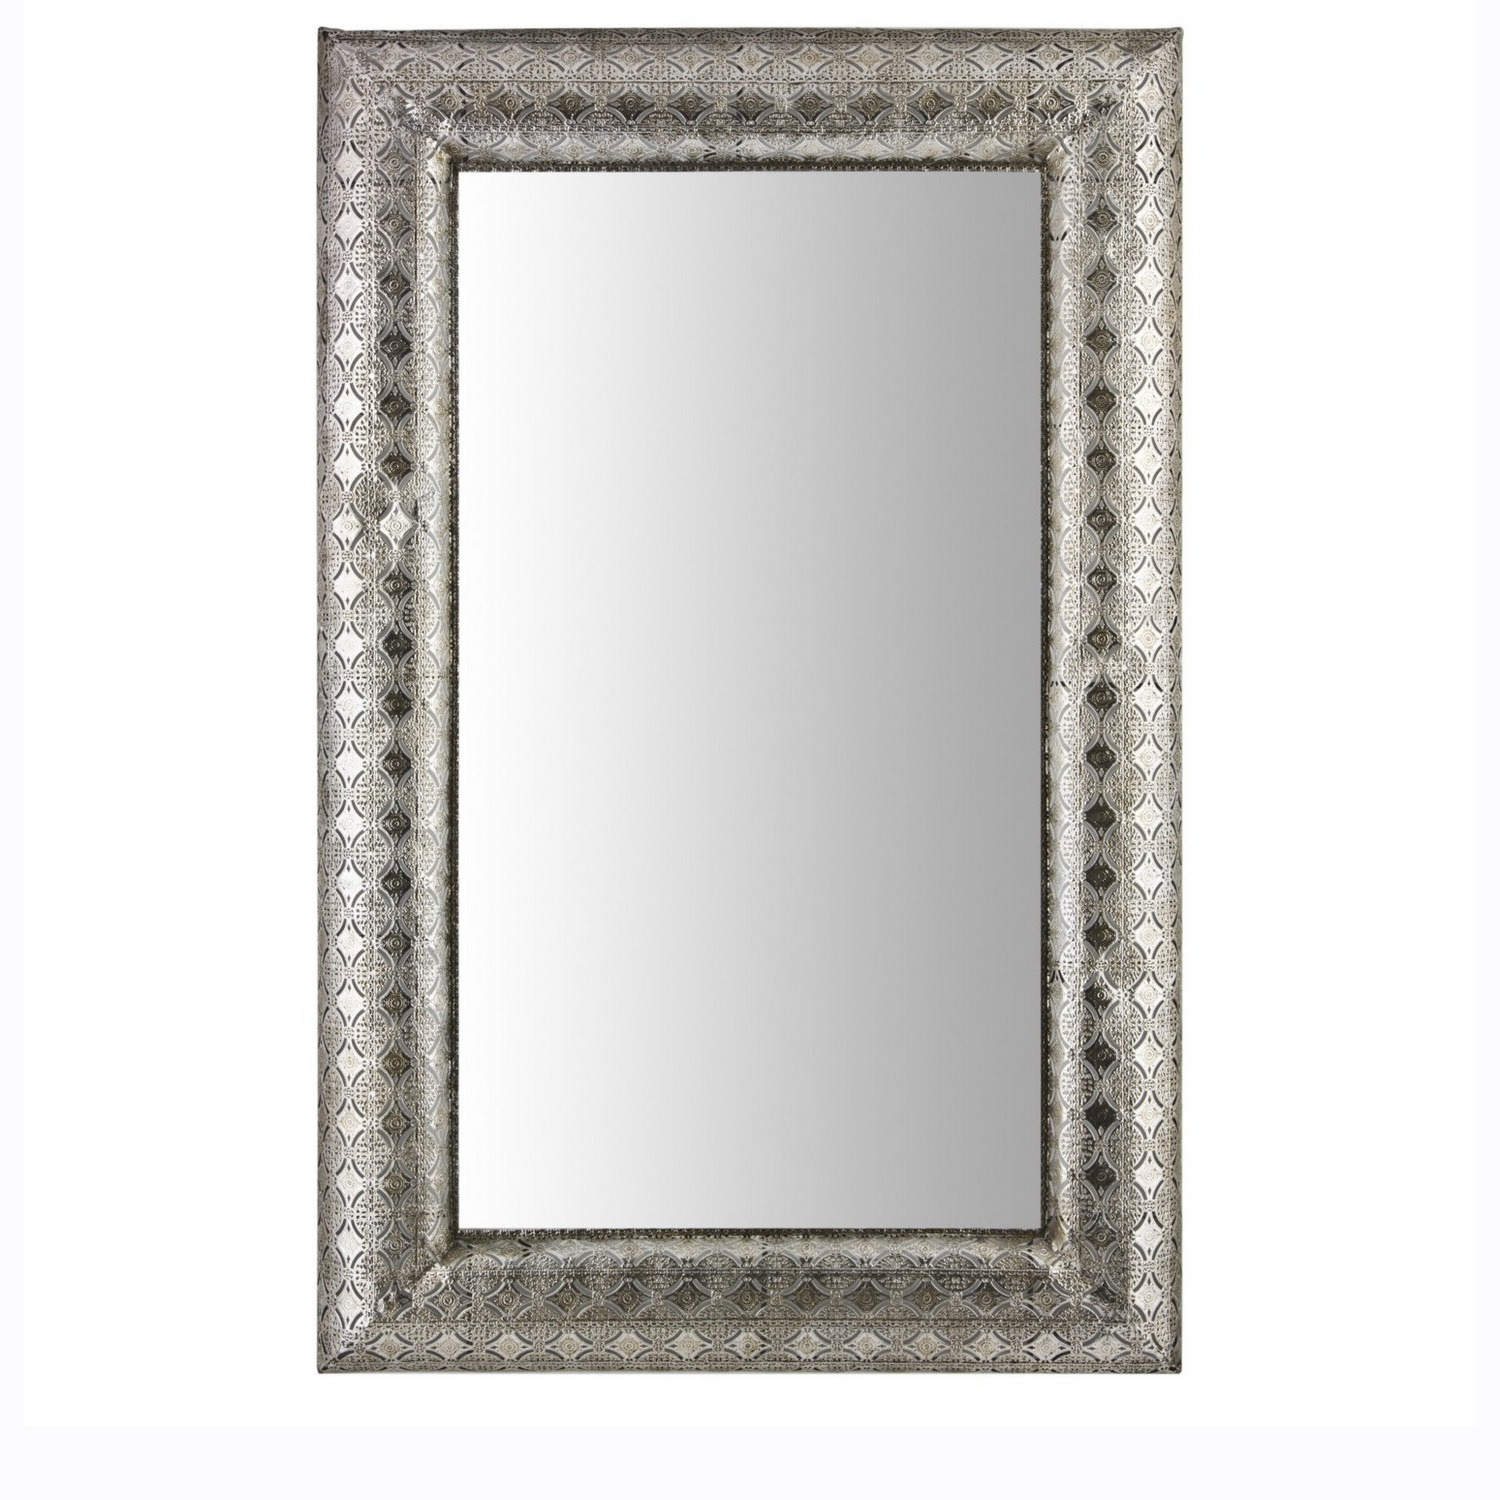 The Range For Most Up To Date Old Fashioned Wall Mirrors (View 4 of 20)